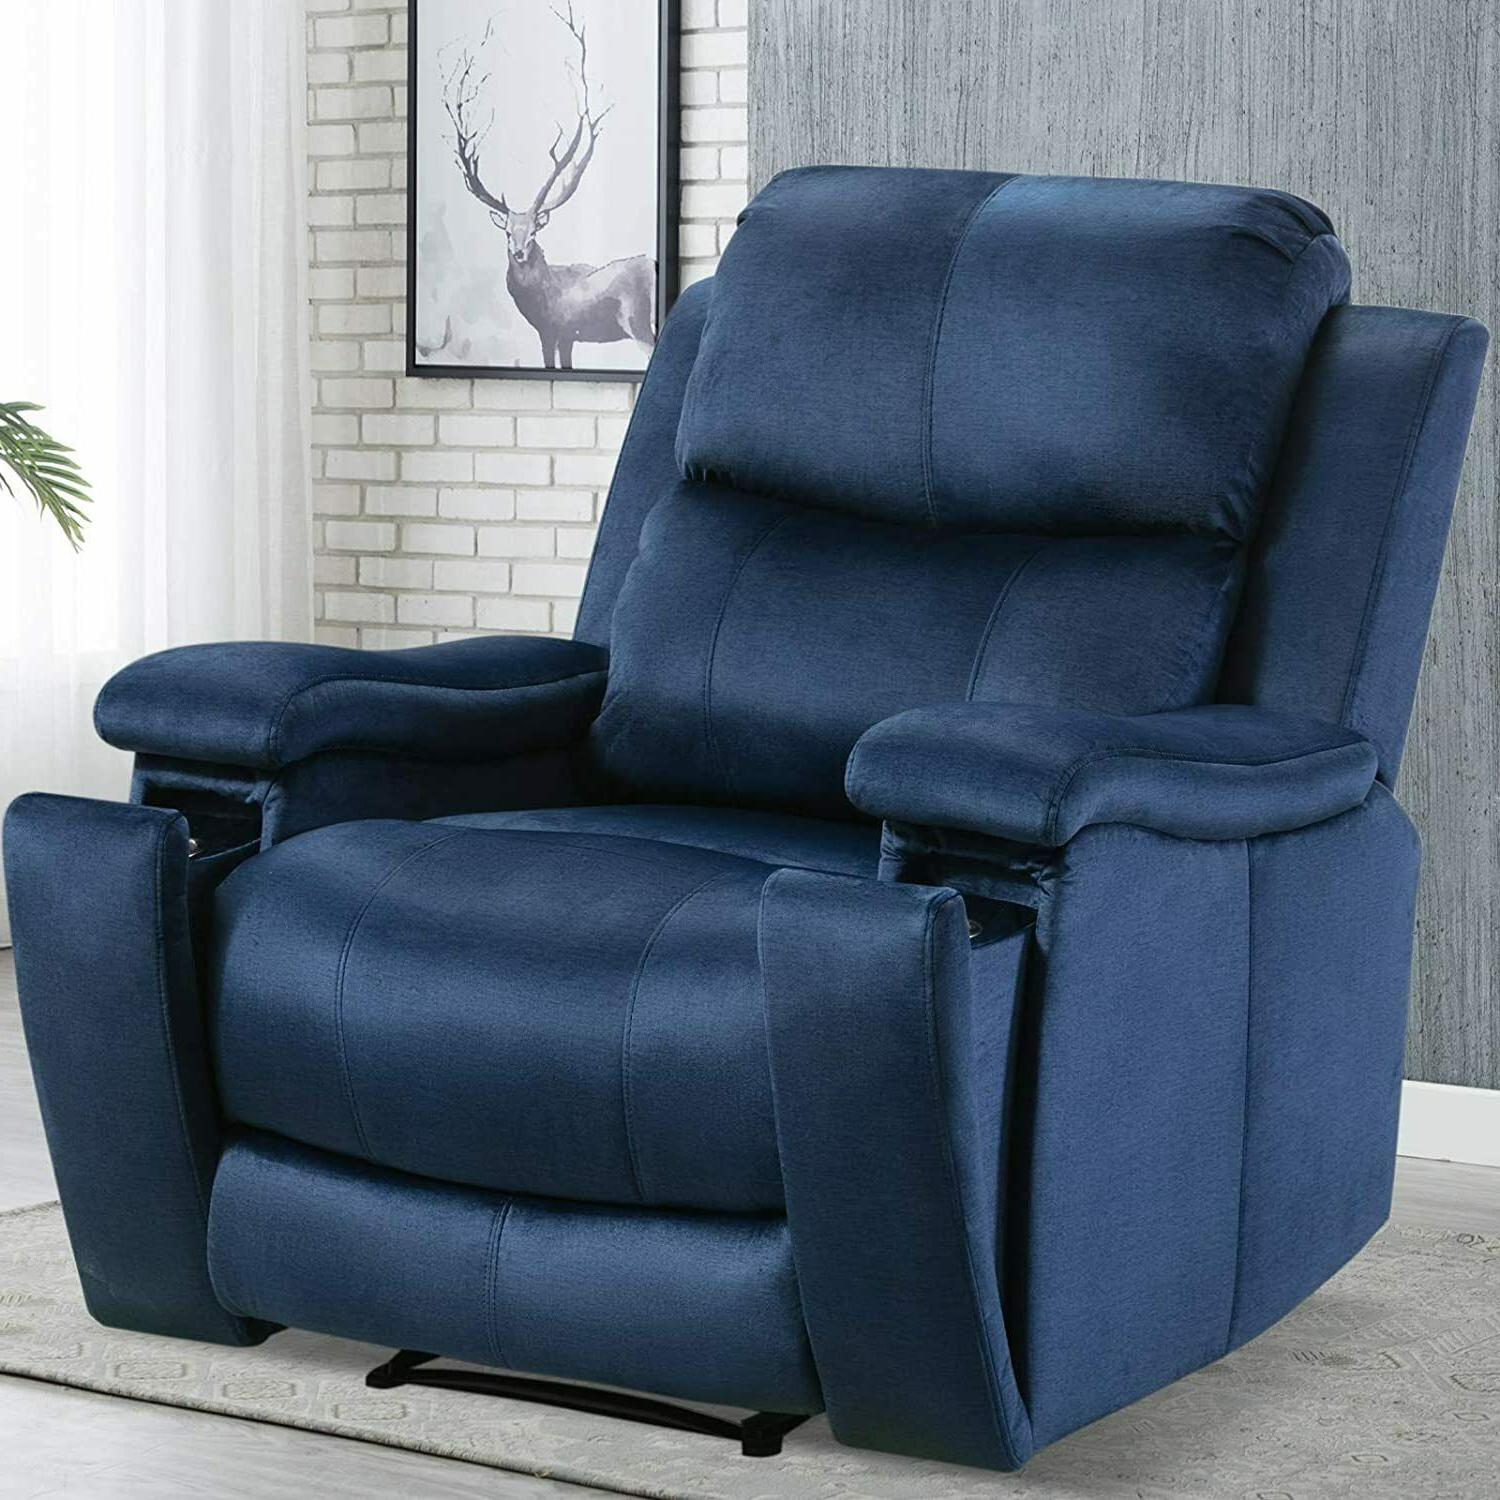 oversized recliner chair with pullable cup holder